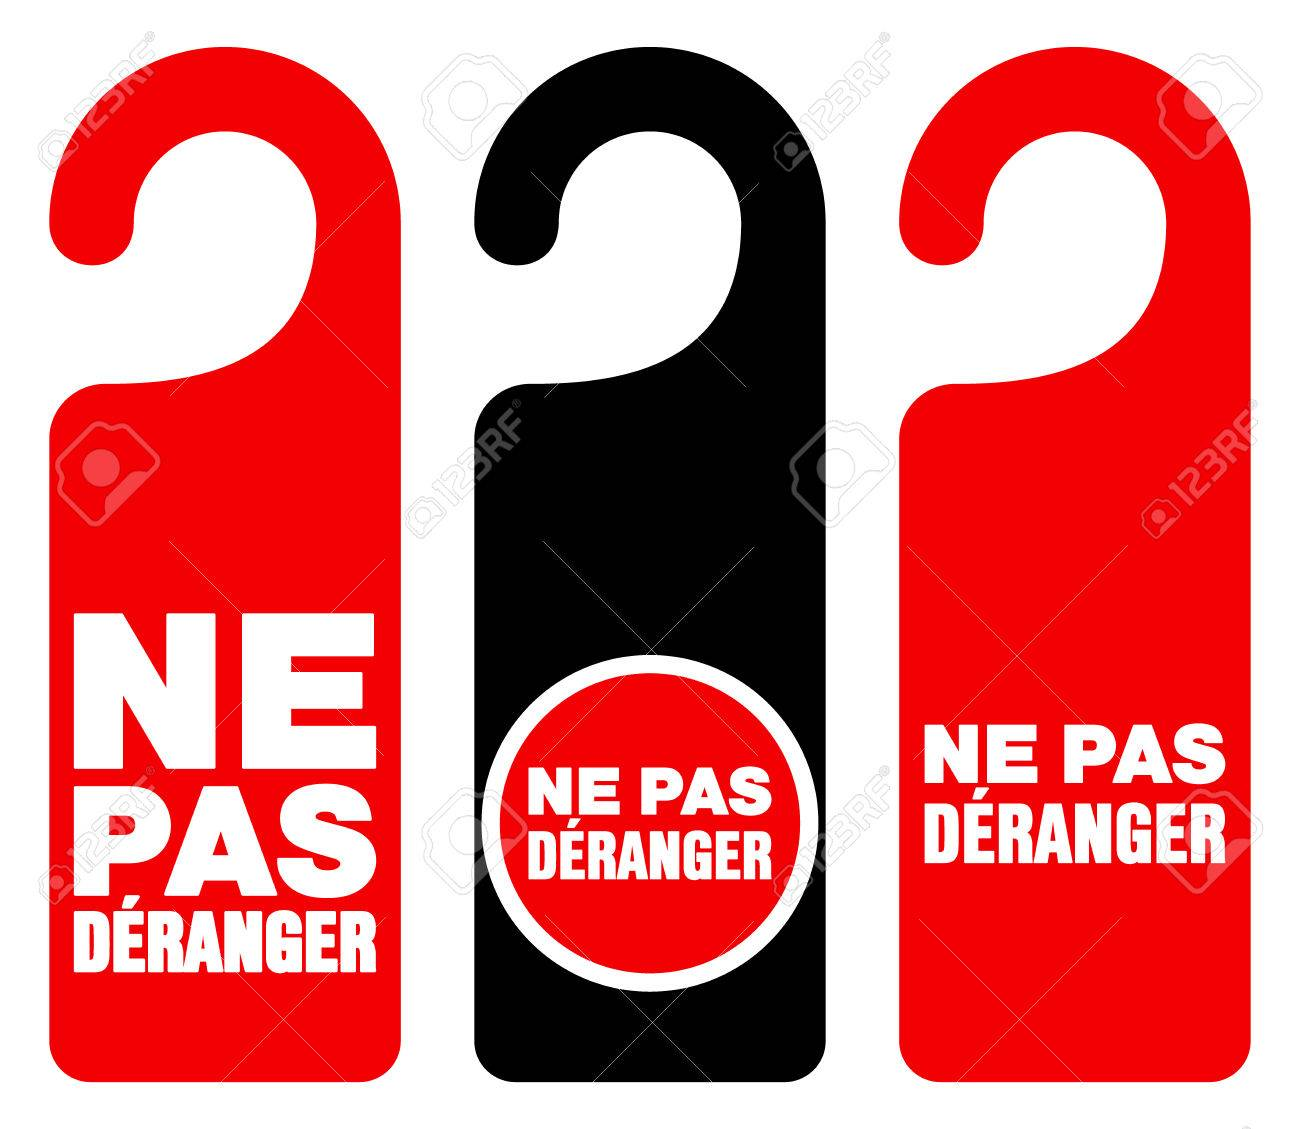 Set of three red black and white door hang tag signs with do not disturb  sc 1 st  123RF.com & Set Of Three Red Black And White Door Hang Tag Signs With Do ...